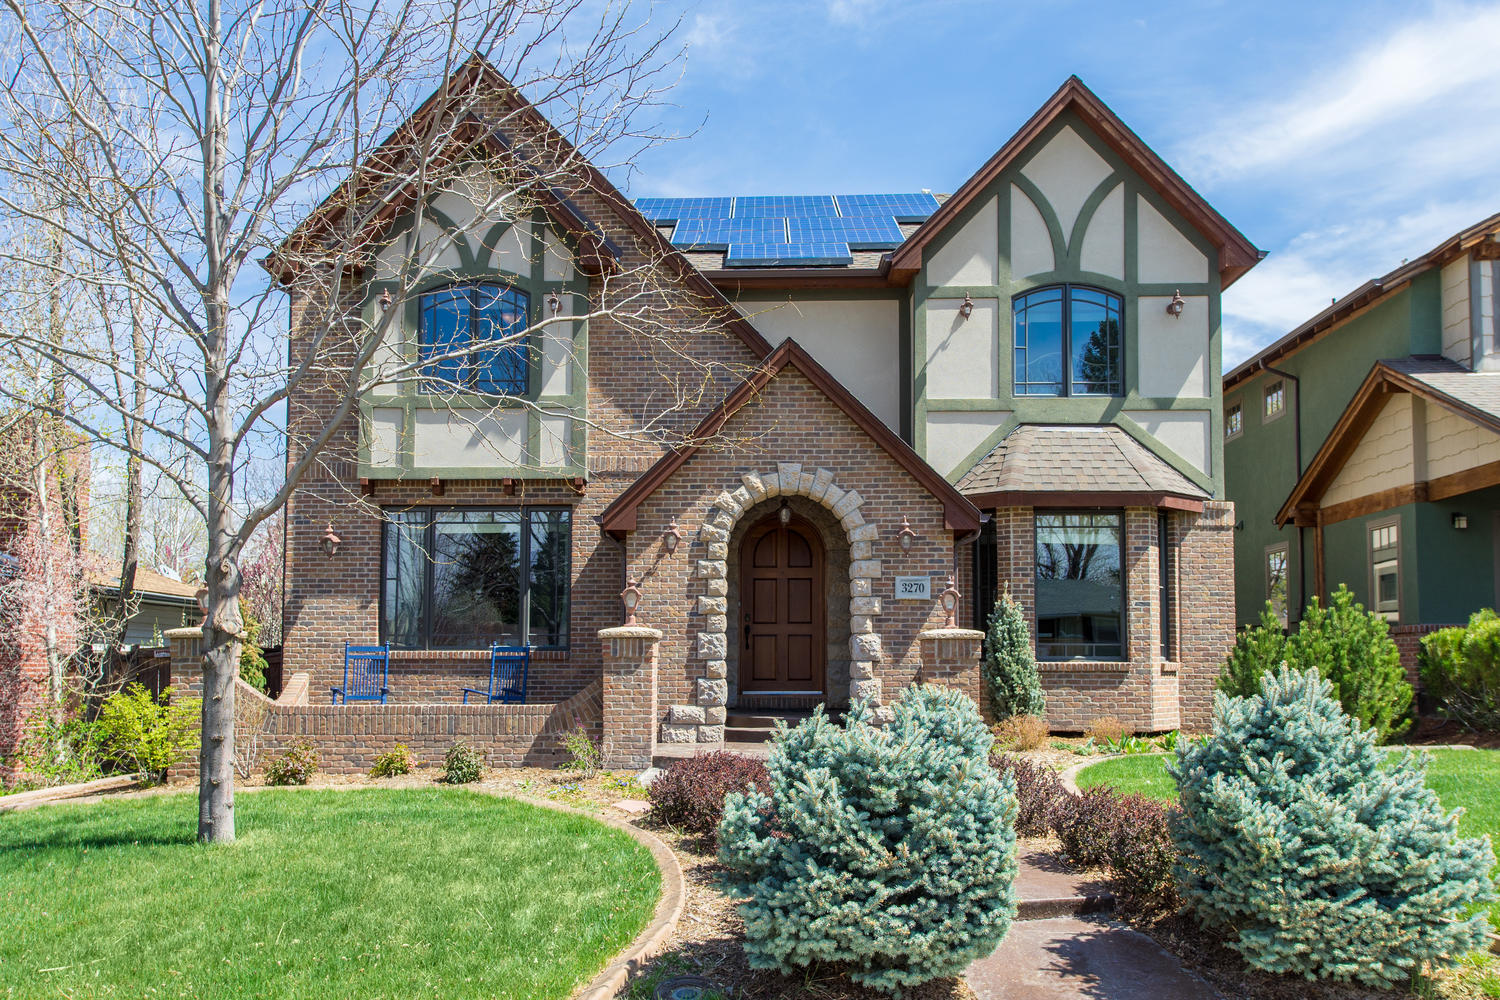 Single Family Home for Sale at Lovely Brick Traditional Home In University Hills 3270 South Clermont Street University Hills, Denver, Colorado, 80222 United States